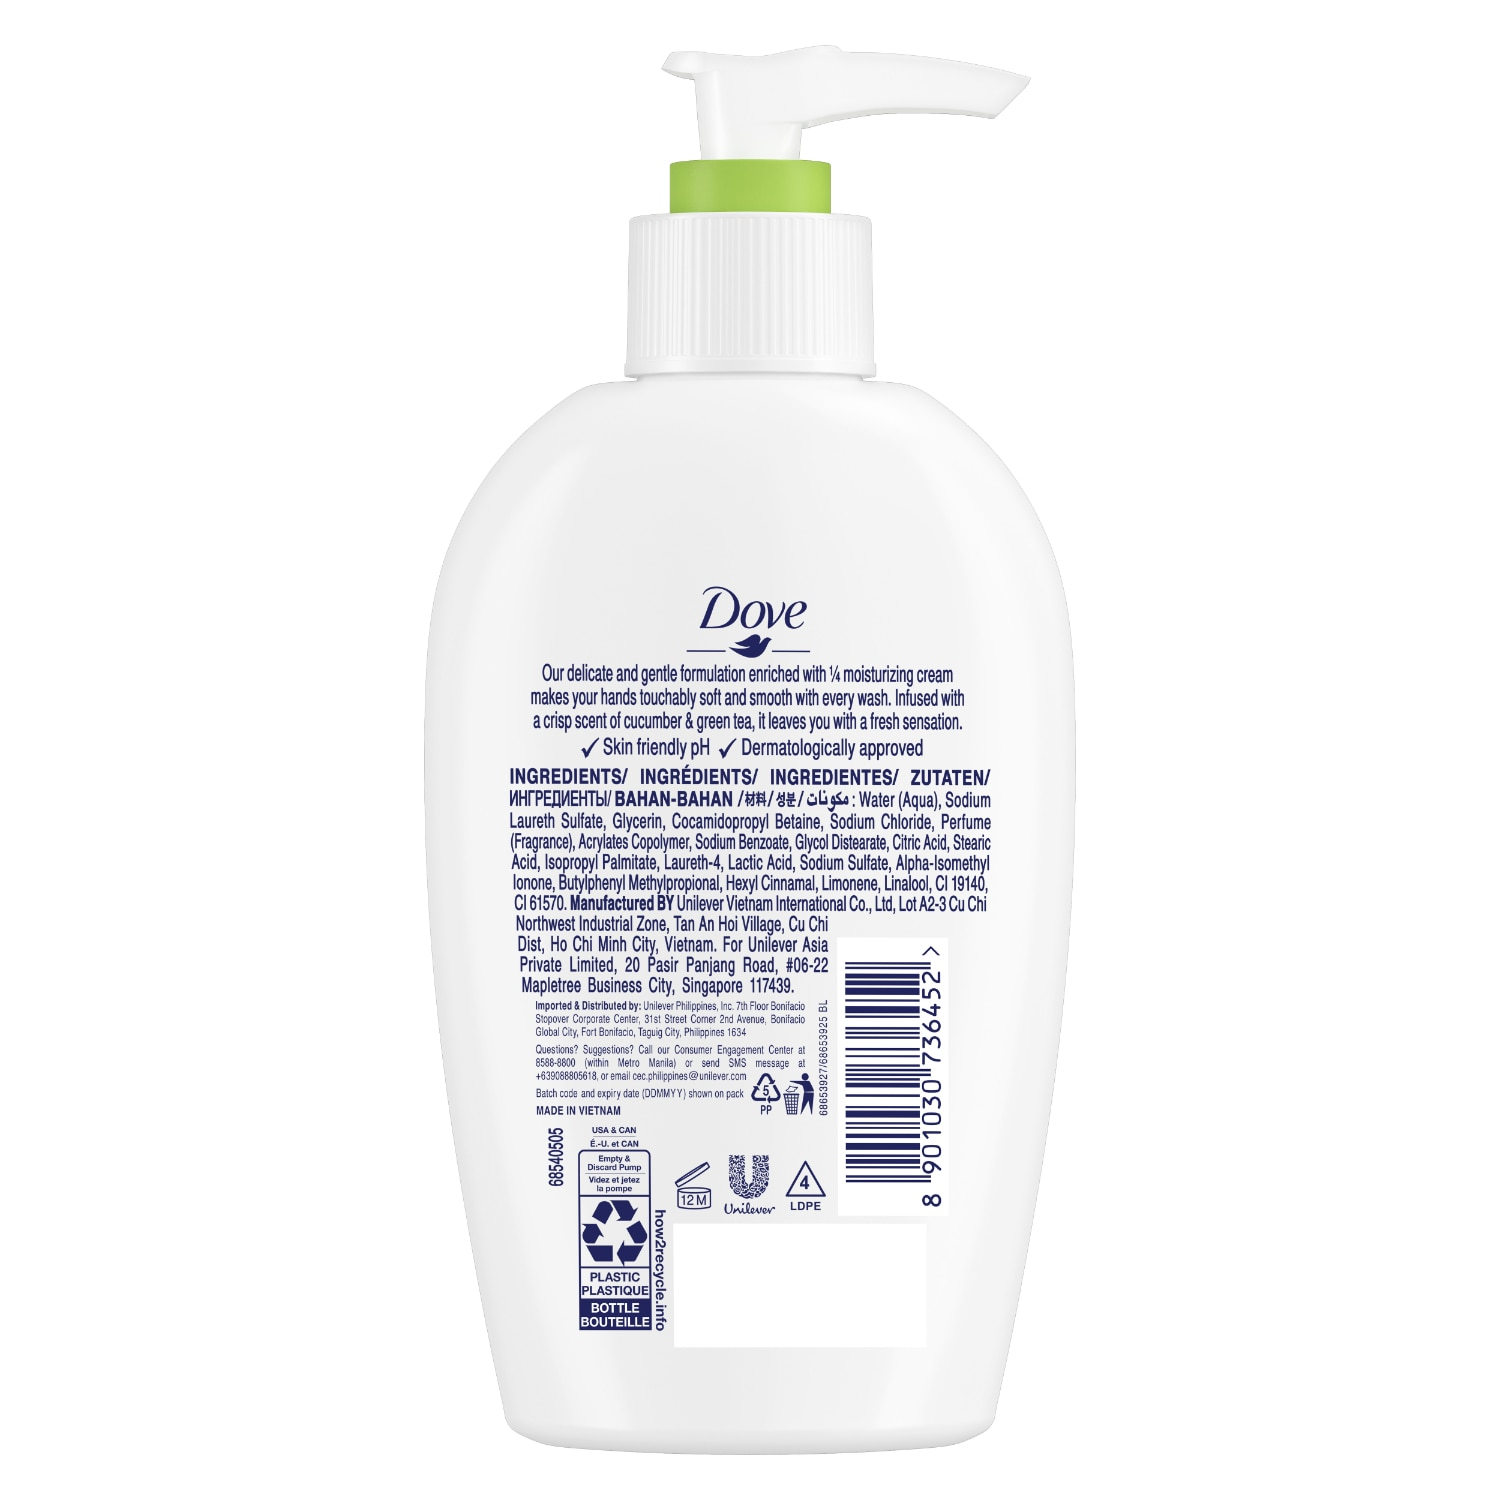 DOVENourishing Hand Wash Cucumber and Green Tea 250ml,Extra P140 off – min spend P1,000 (code:SC140) - Members Only, P70 off – min spend P800 (code: SC70) P35 off - min spend P600 (code:SC35) Promo exclusions: Health items, Milk, B1T1 and Buy xx for xx promos